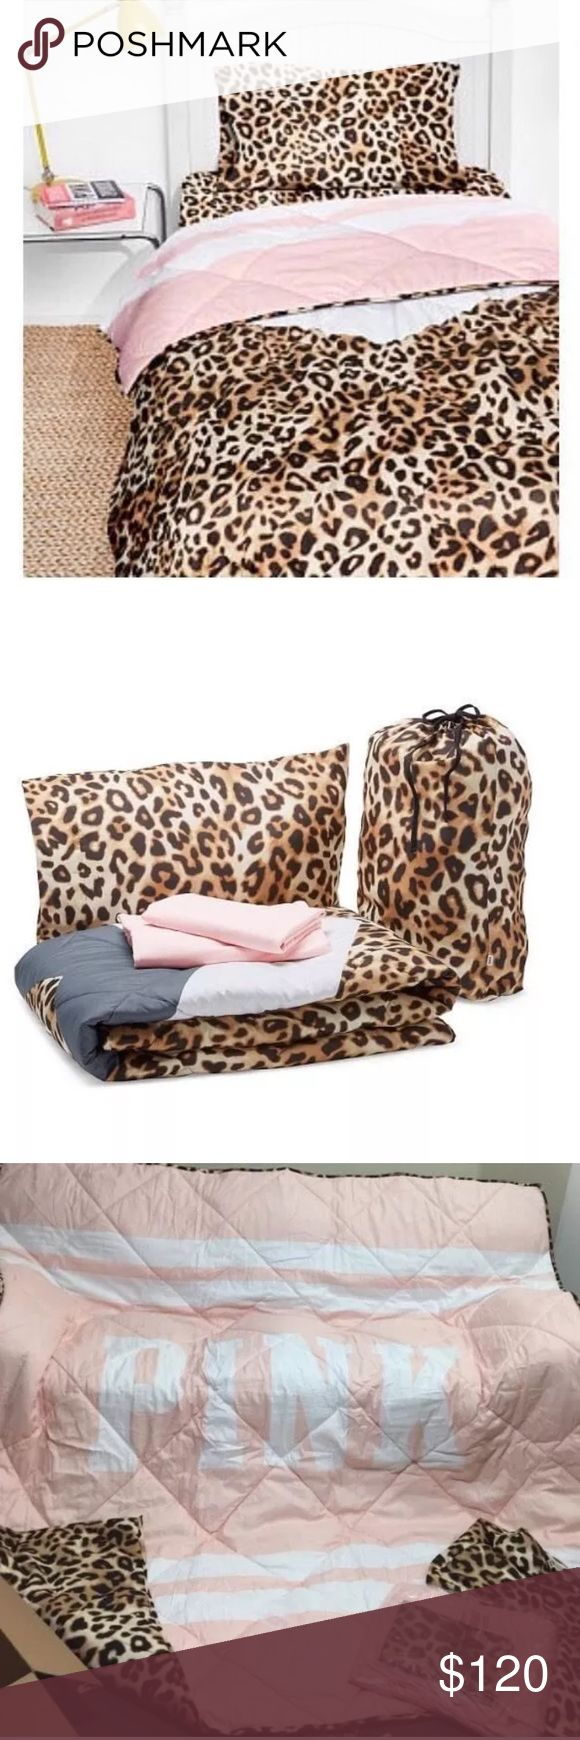 New VS Pink Bed In A Bag Leopard Twin/Twin XL Victoria's Secret Pink Bed in Bag Cheetah leopard print. Fits Twin and Twin XL (perfect for dorm beds!!!) Brand new. No trades! Feel free to make an offer! PINK Victoria's Secret Other